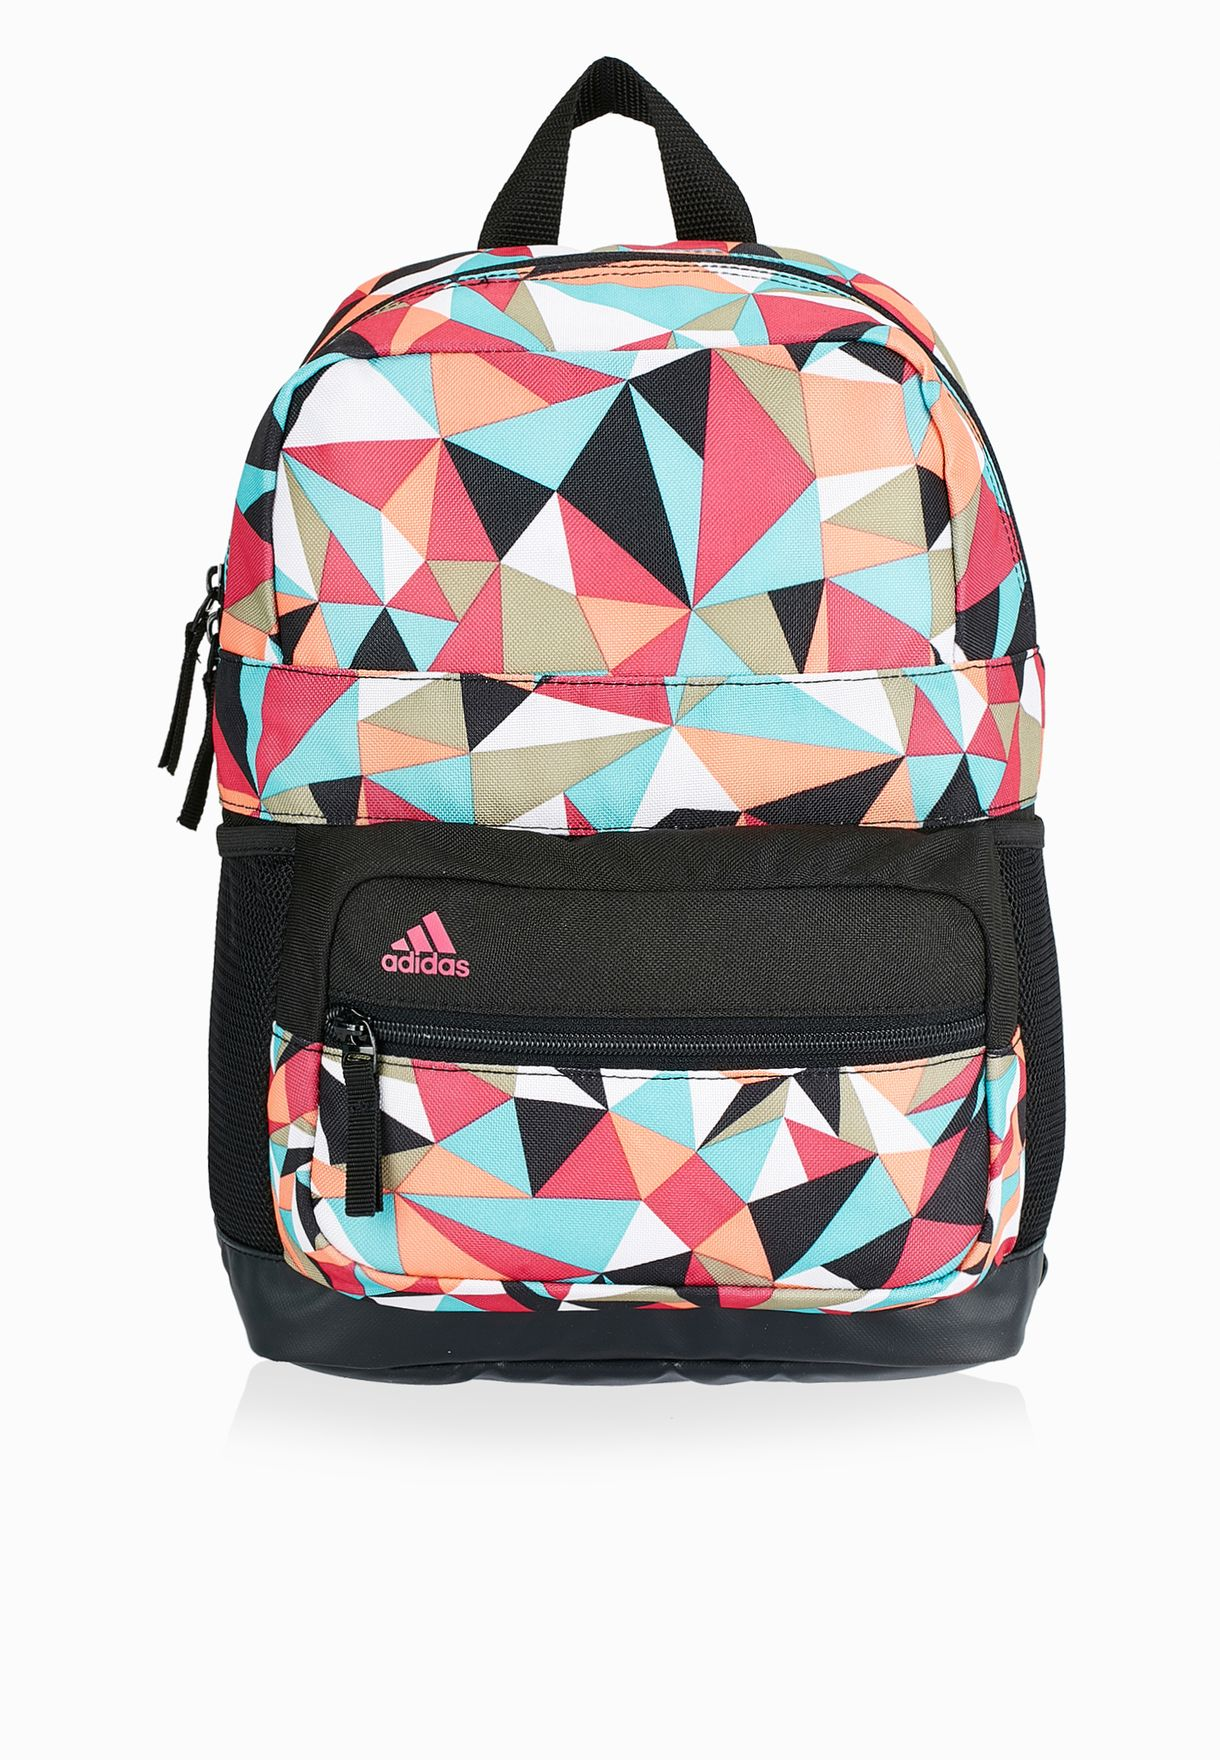 Shop adidas multicolor Extra Small G1 Backpack AJ9423 for Kids in ... c2bd9b73097f2